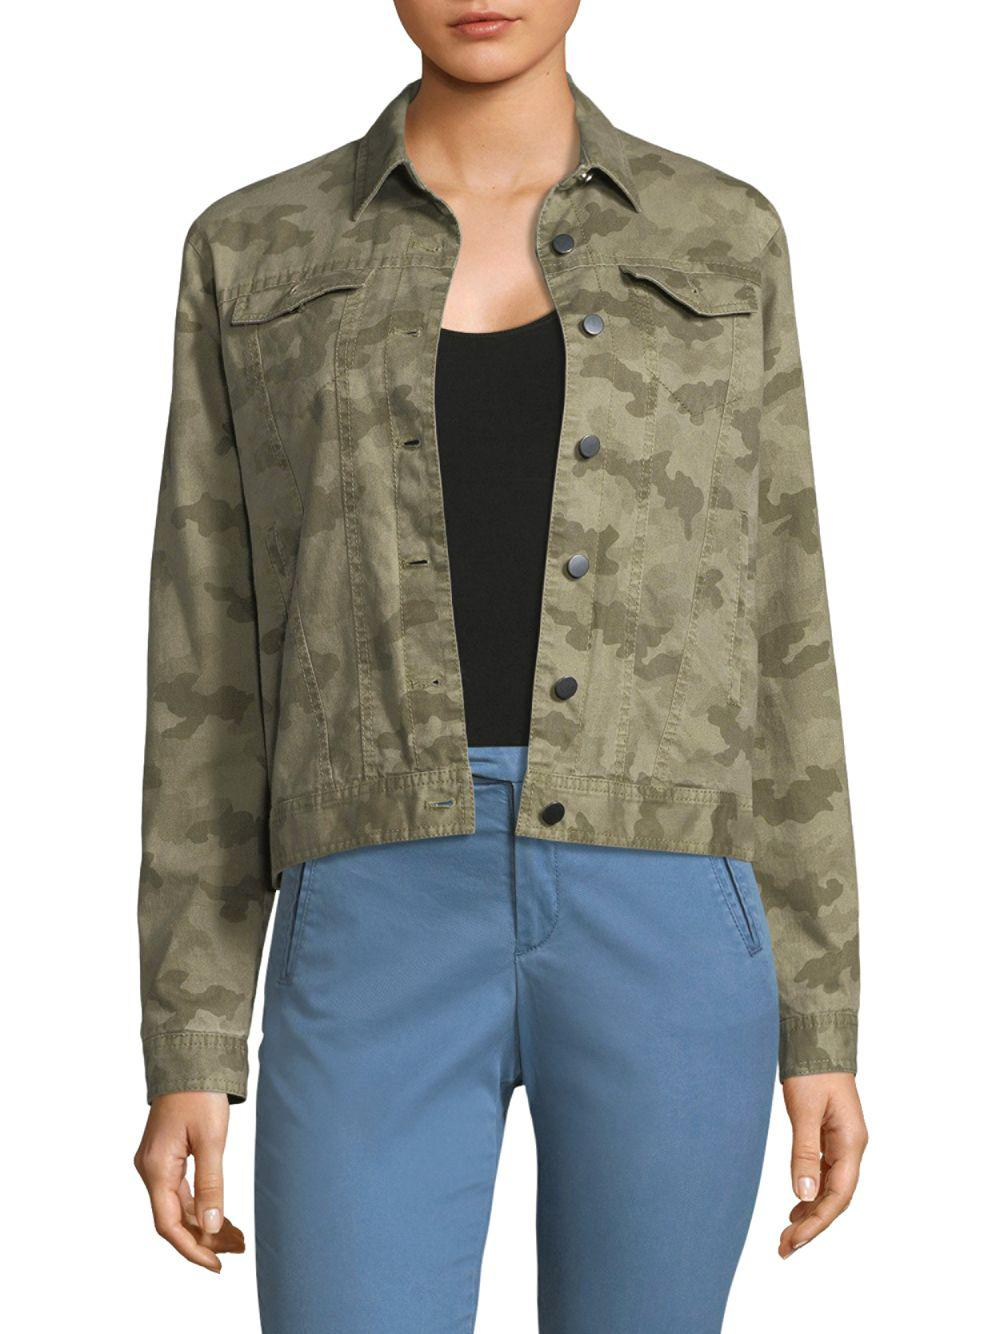 cf8416f3a9396 ATM Camo Jean Jacket in Green - Save 24% - Lyst